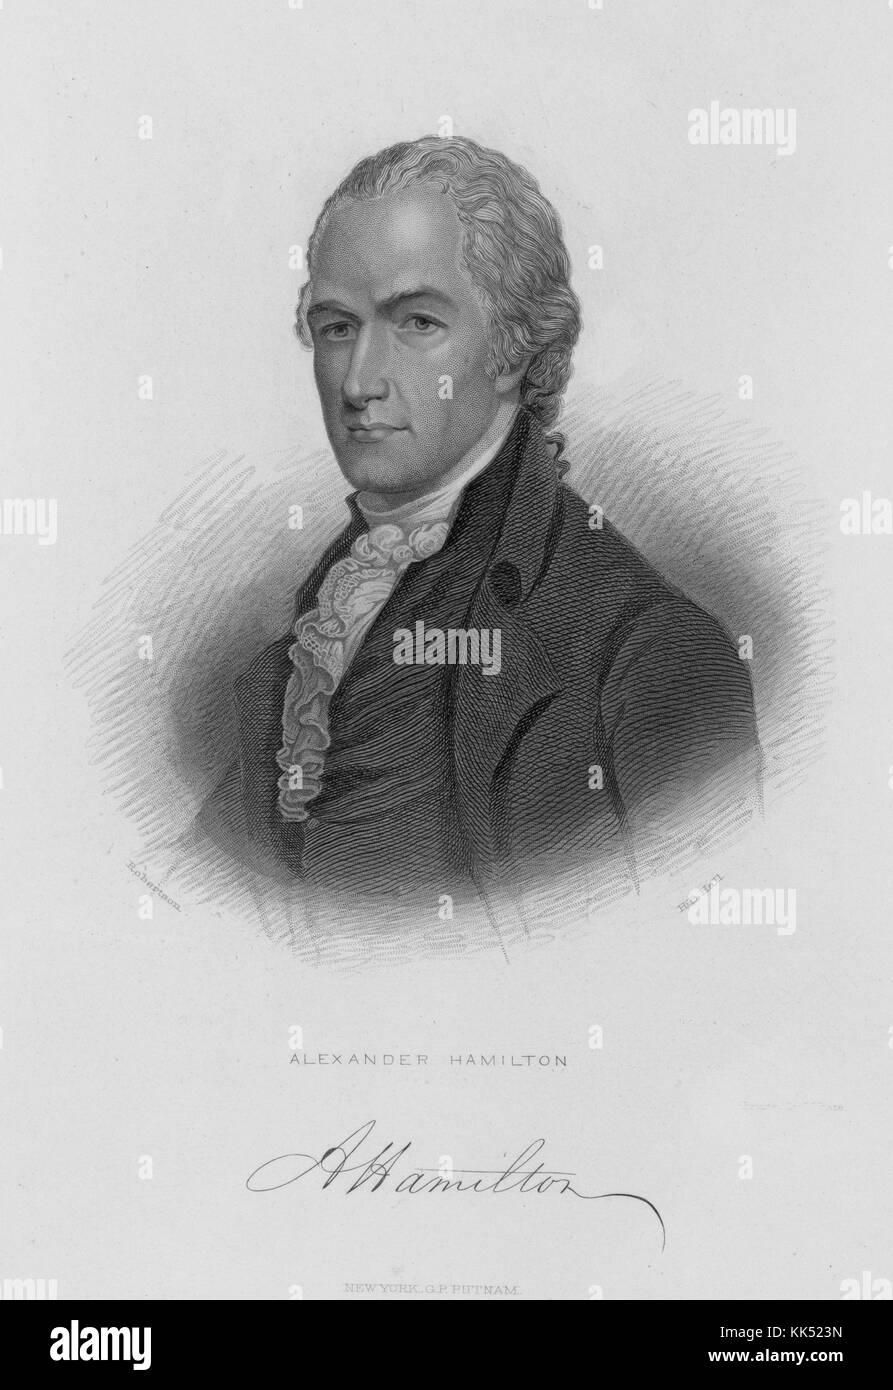 Engraved portrait of Alexander Hamilton, a Founding Father of the United States, chief staff aide to General George - Stock Image